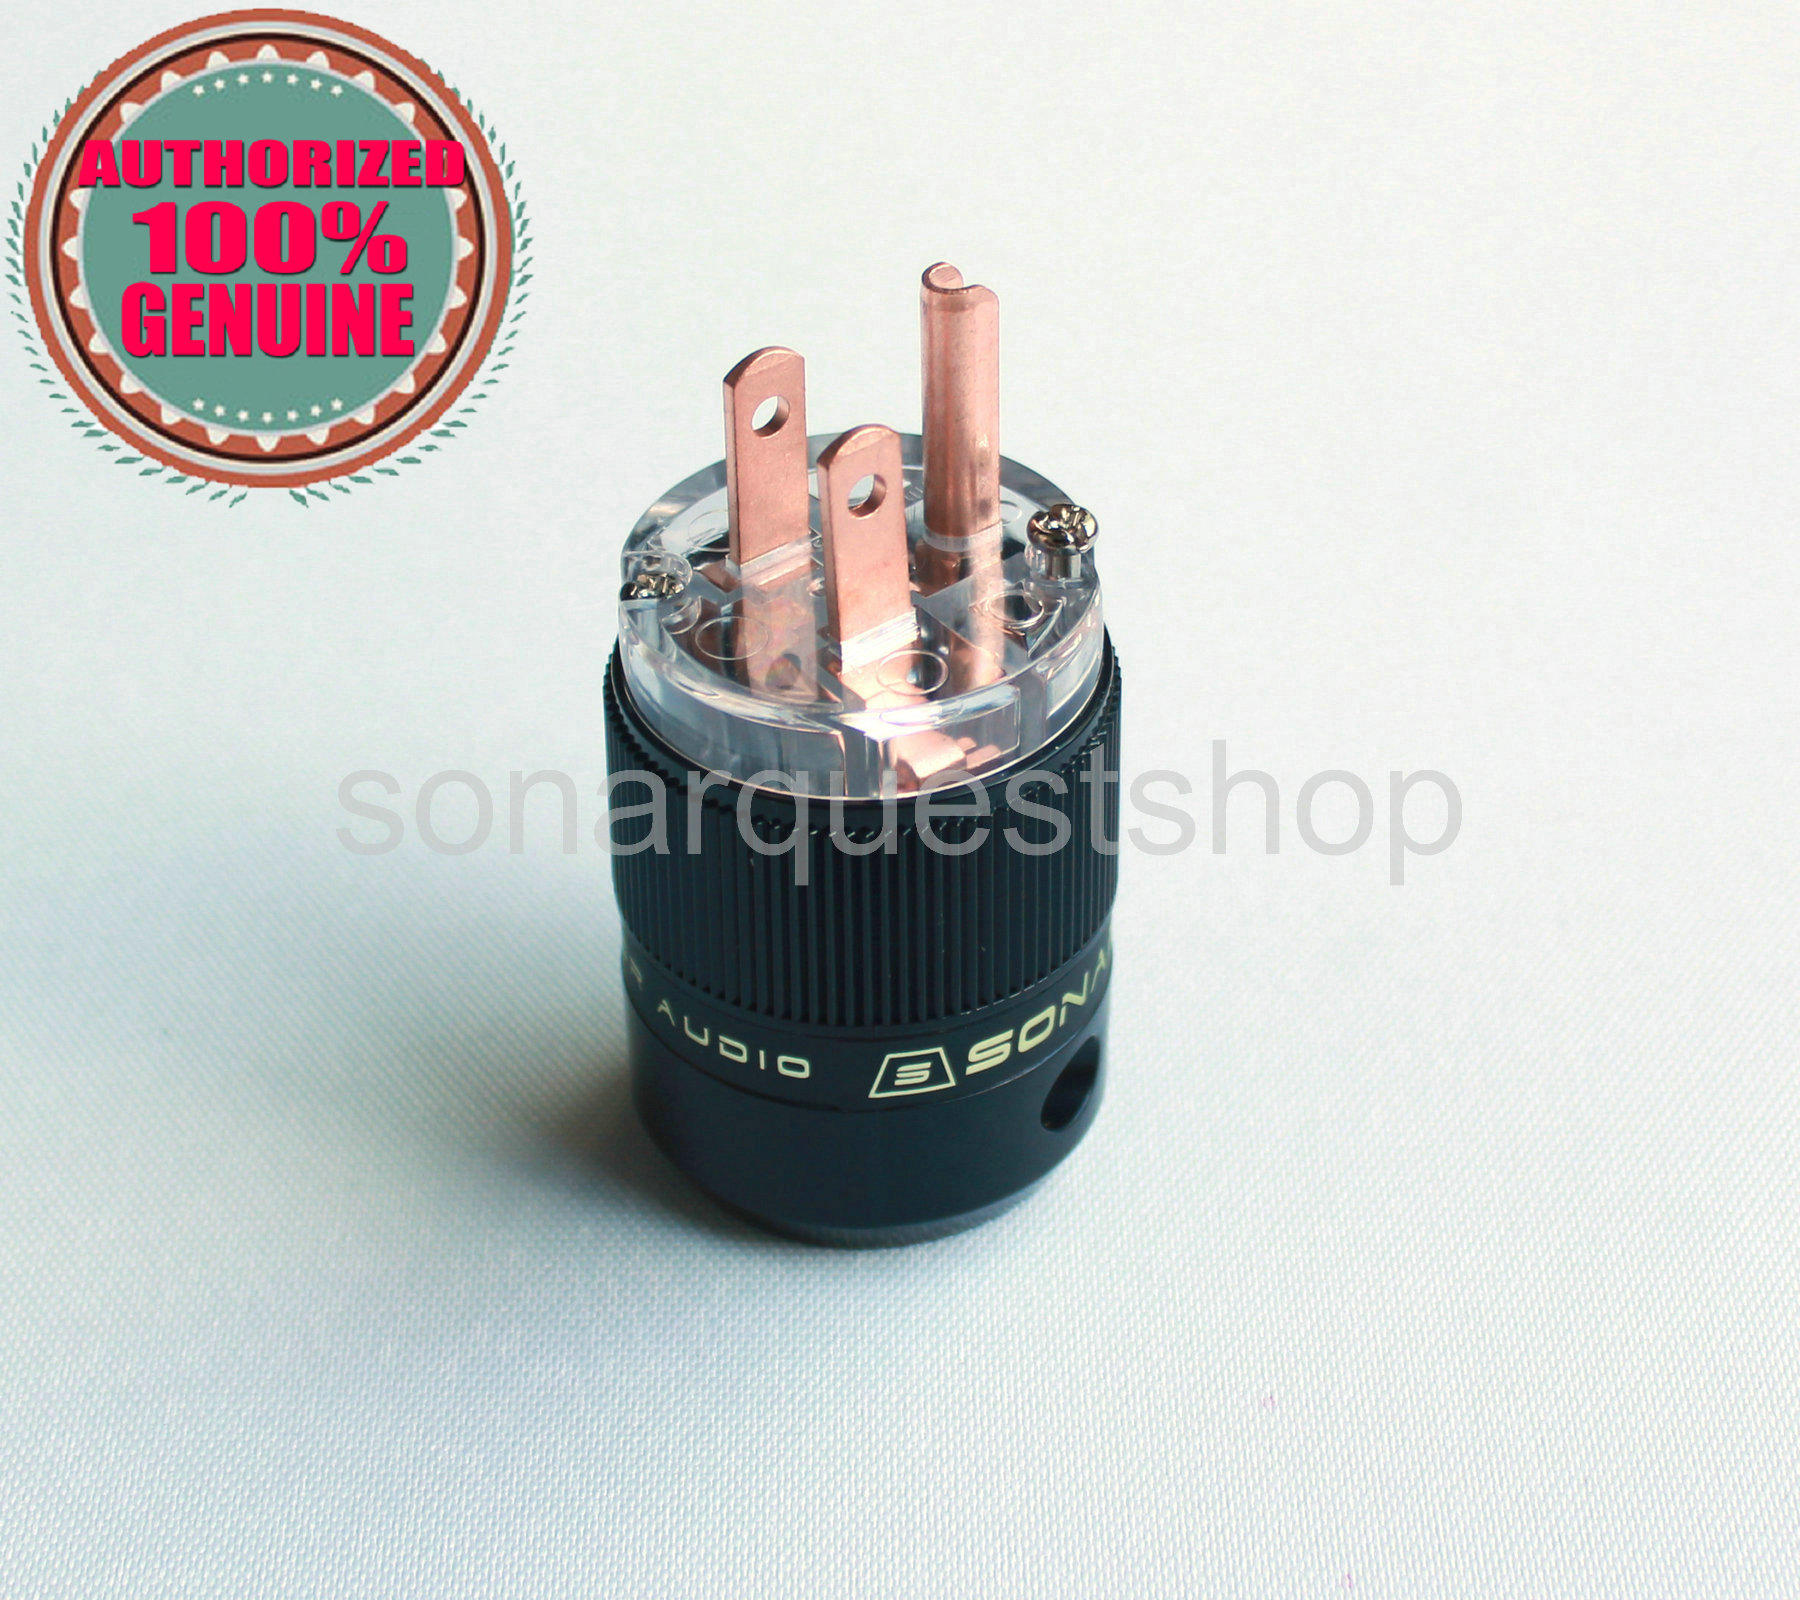 SONARQUEST SE-RP(T) Red Copper UT Power Plug